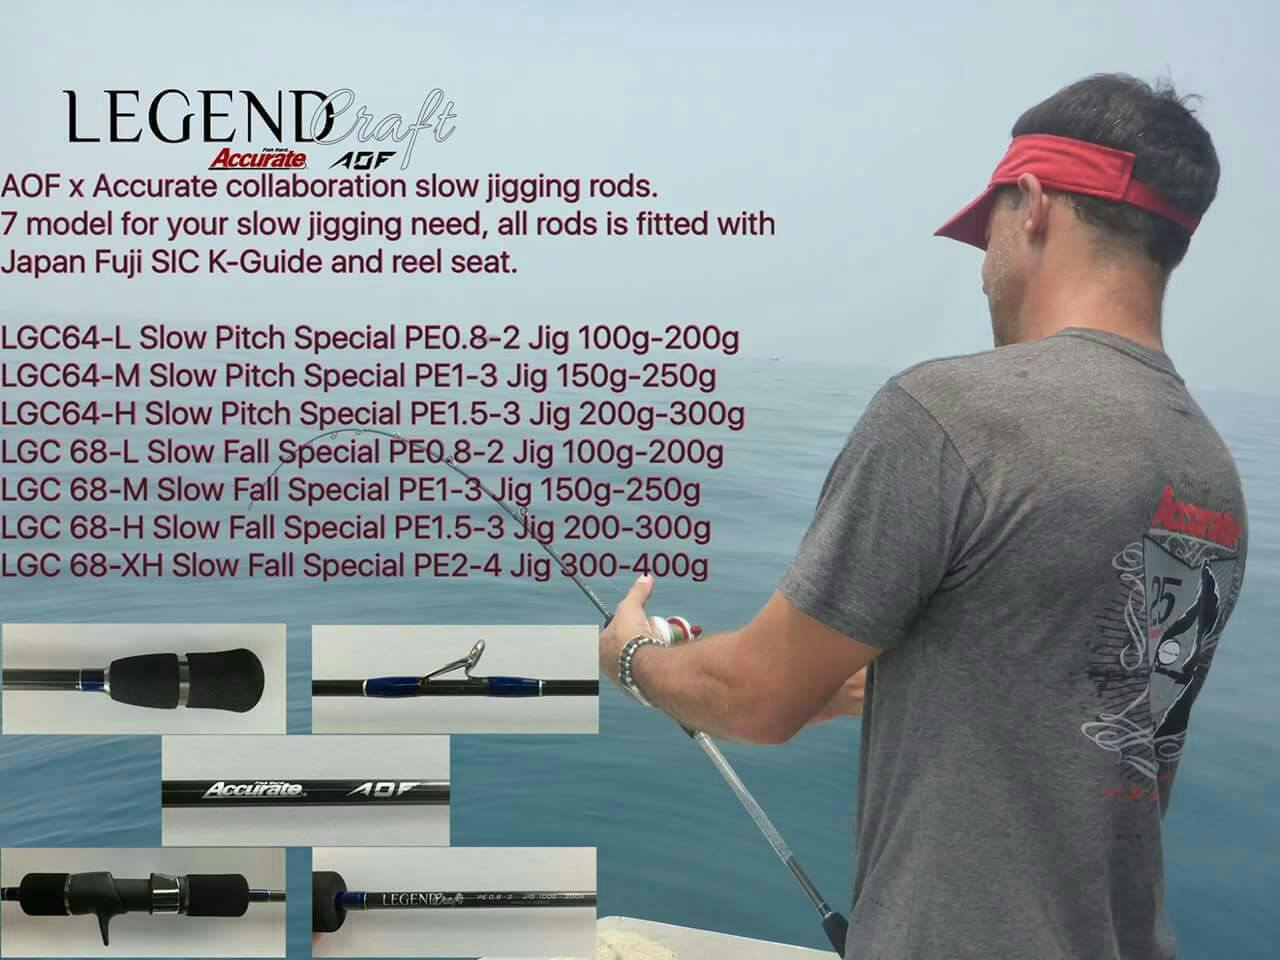 คัน jigging  -  Accurate  Legend Craft